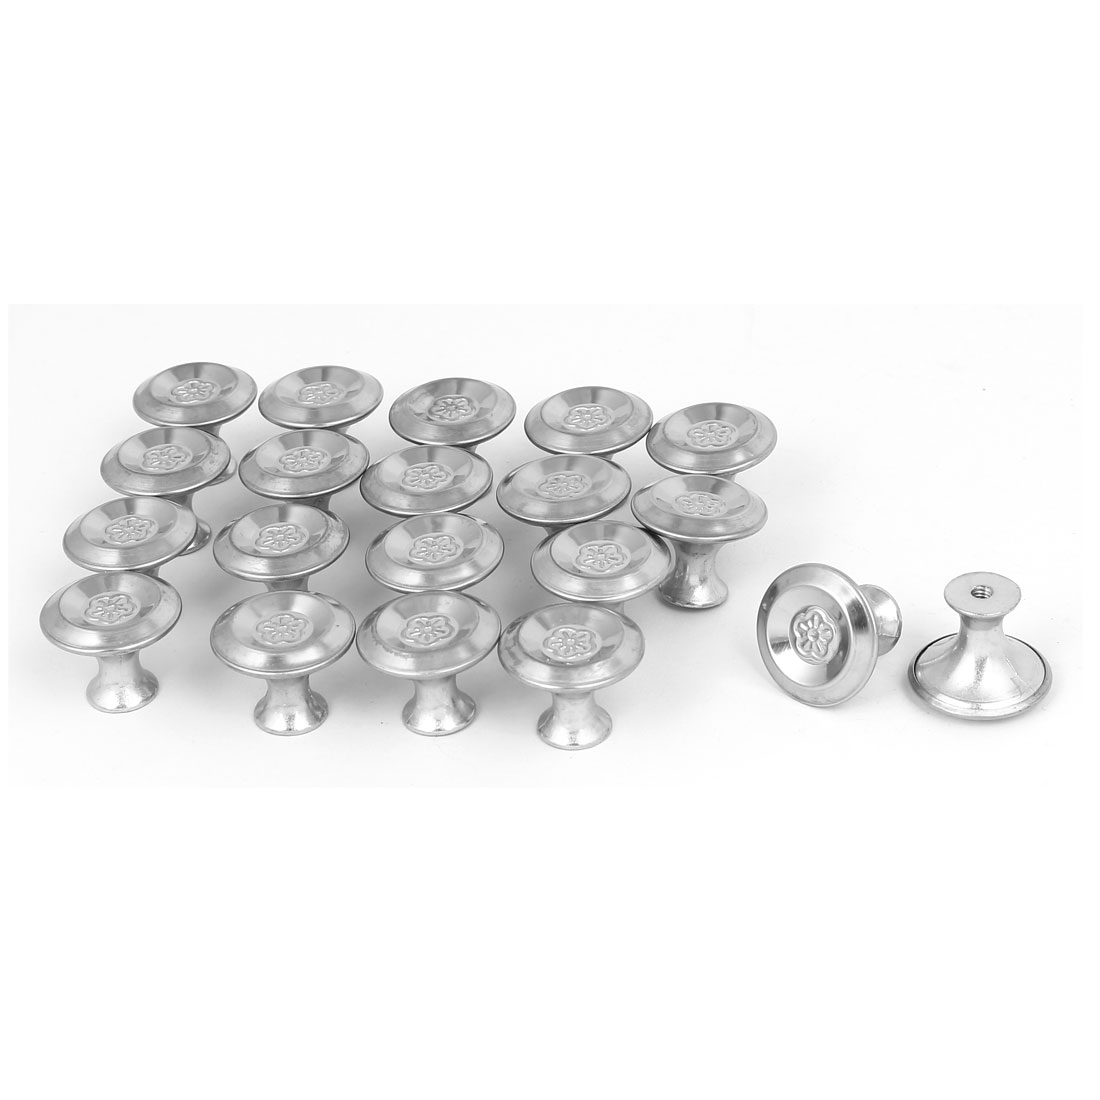 Cabinet Drawer Single Hole Flower Printed Pull Knobs Silver Tone 24mmx19mm 20pcs